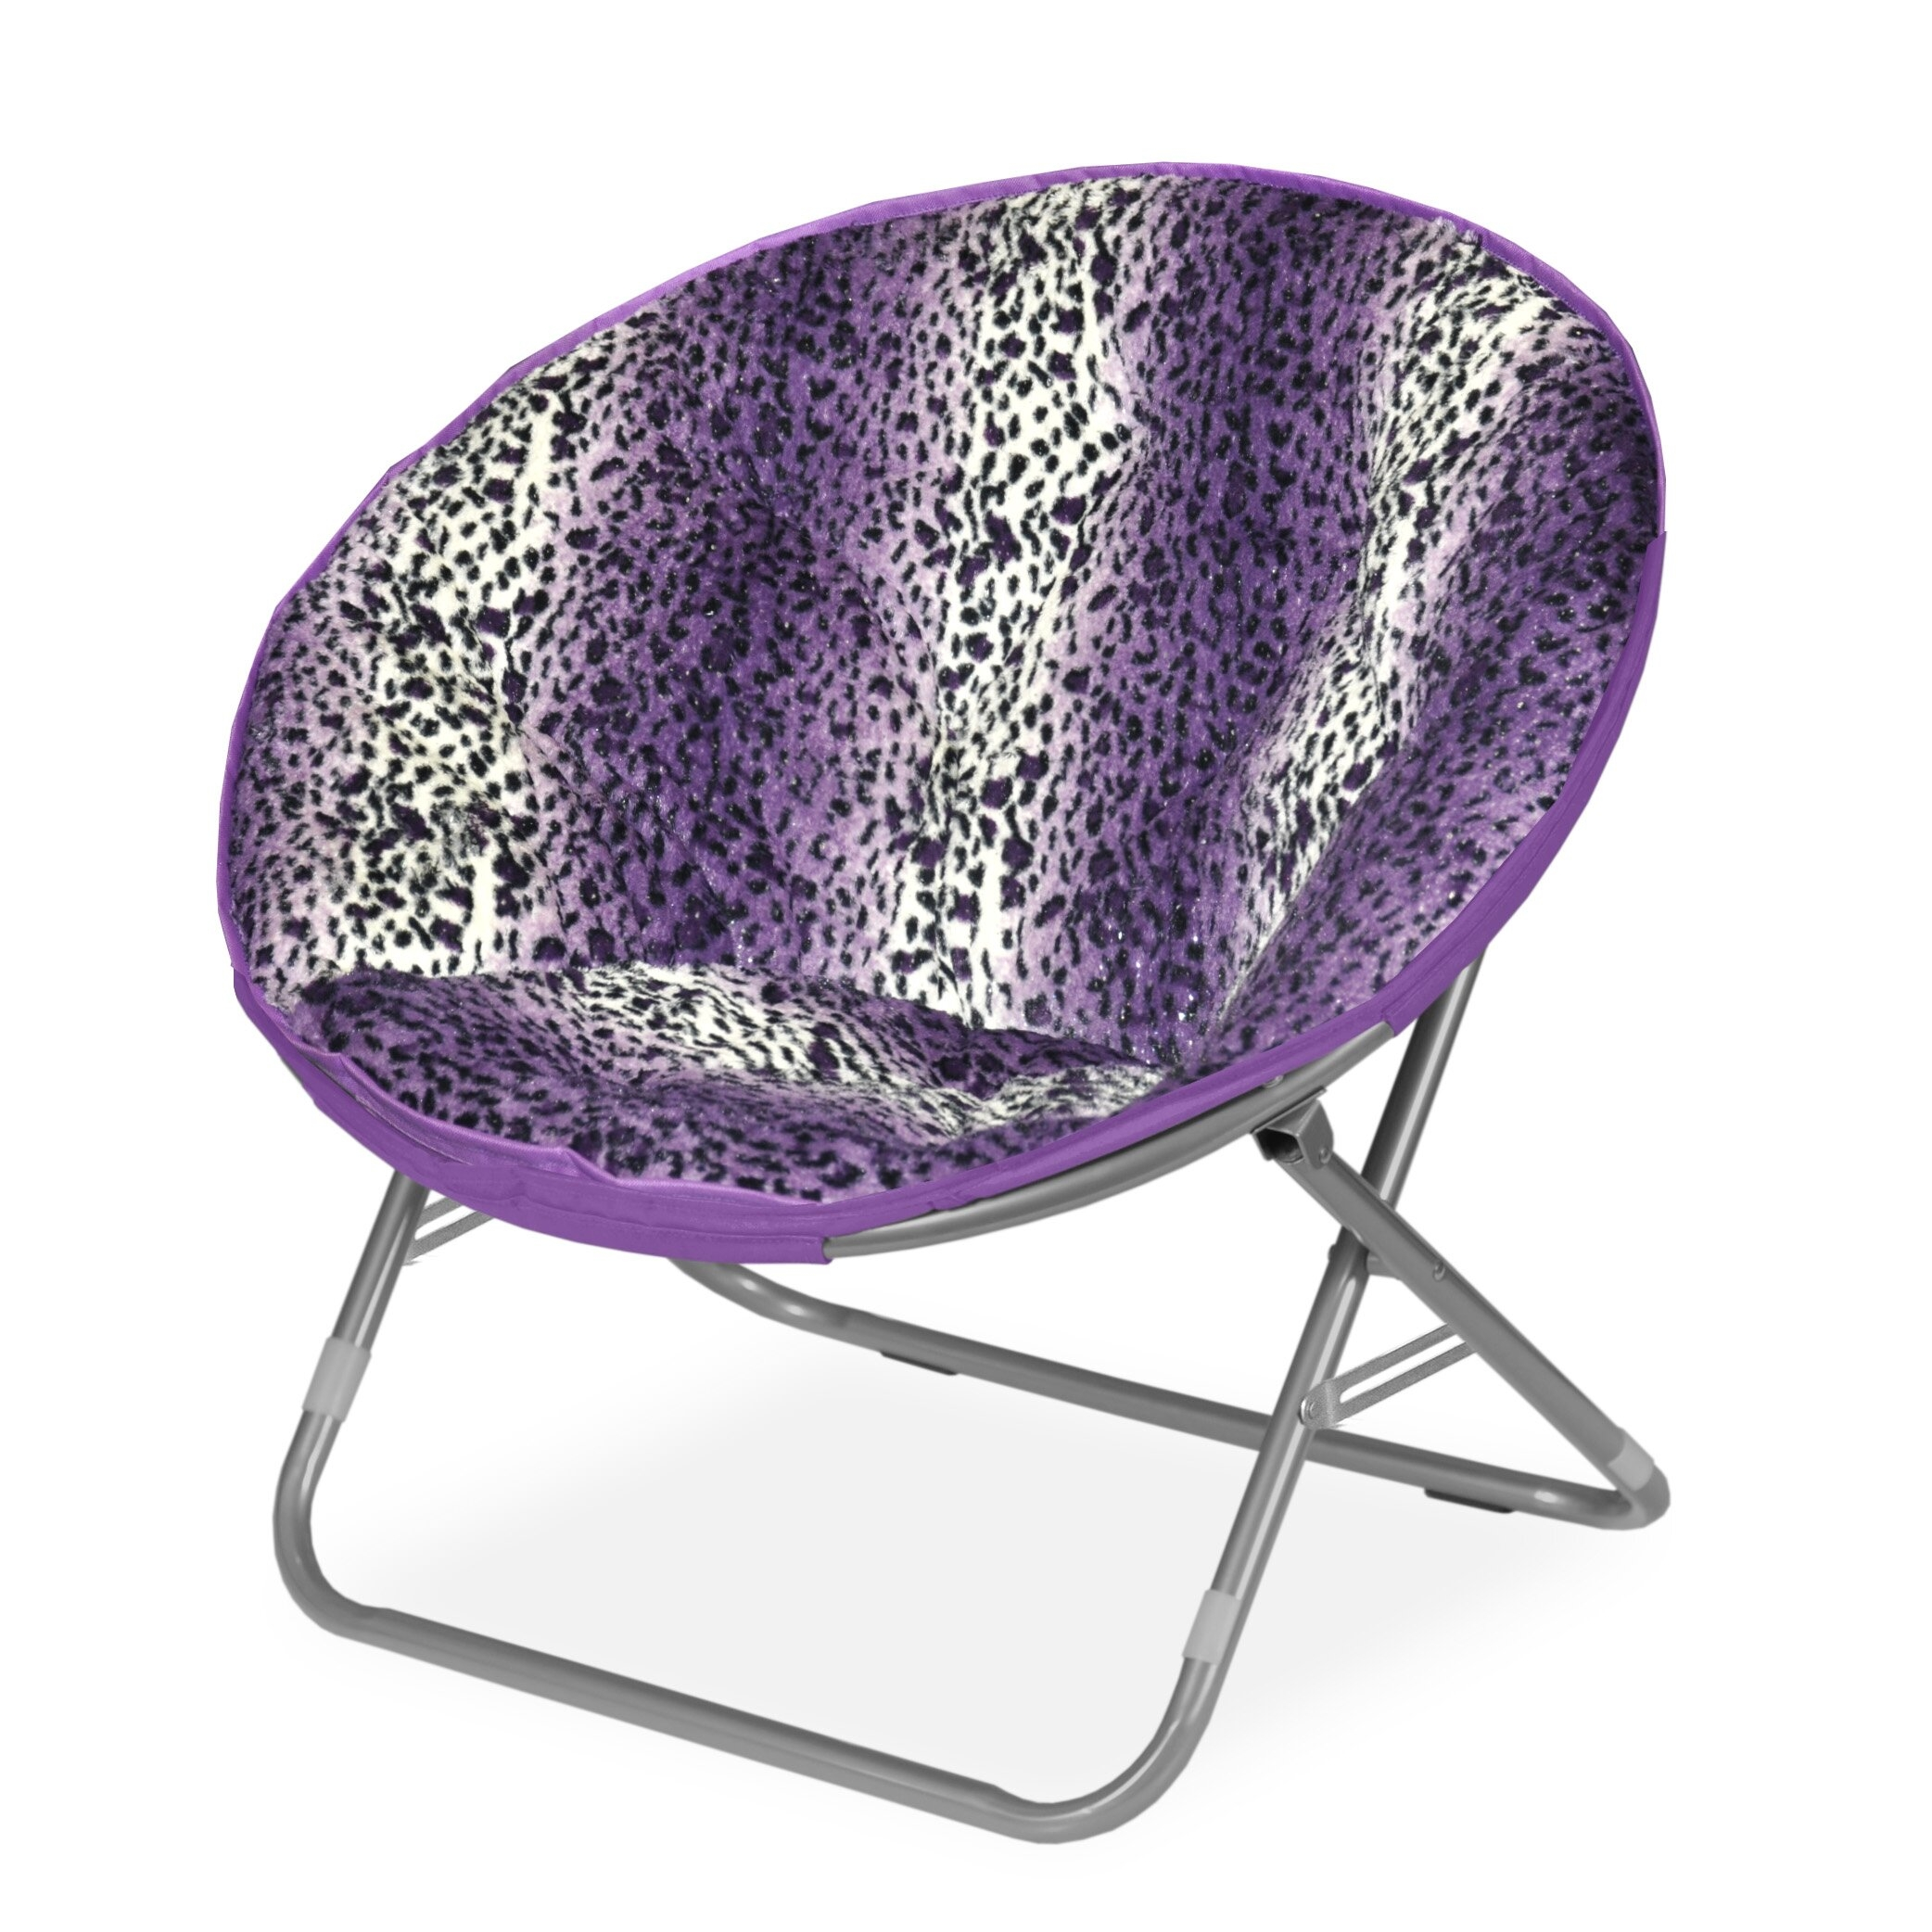 Rock Your Room Leopard Ombre Faux Fur Saucer Papasam Chair